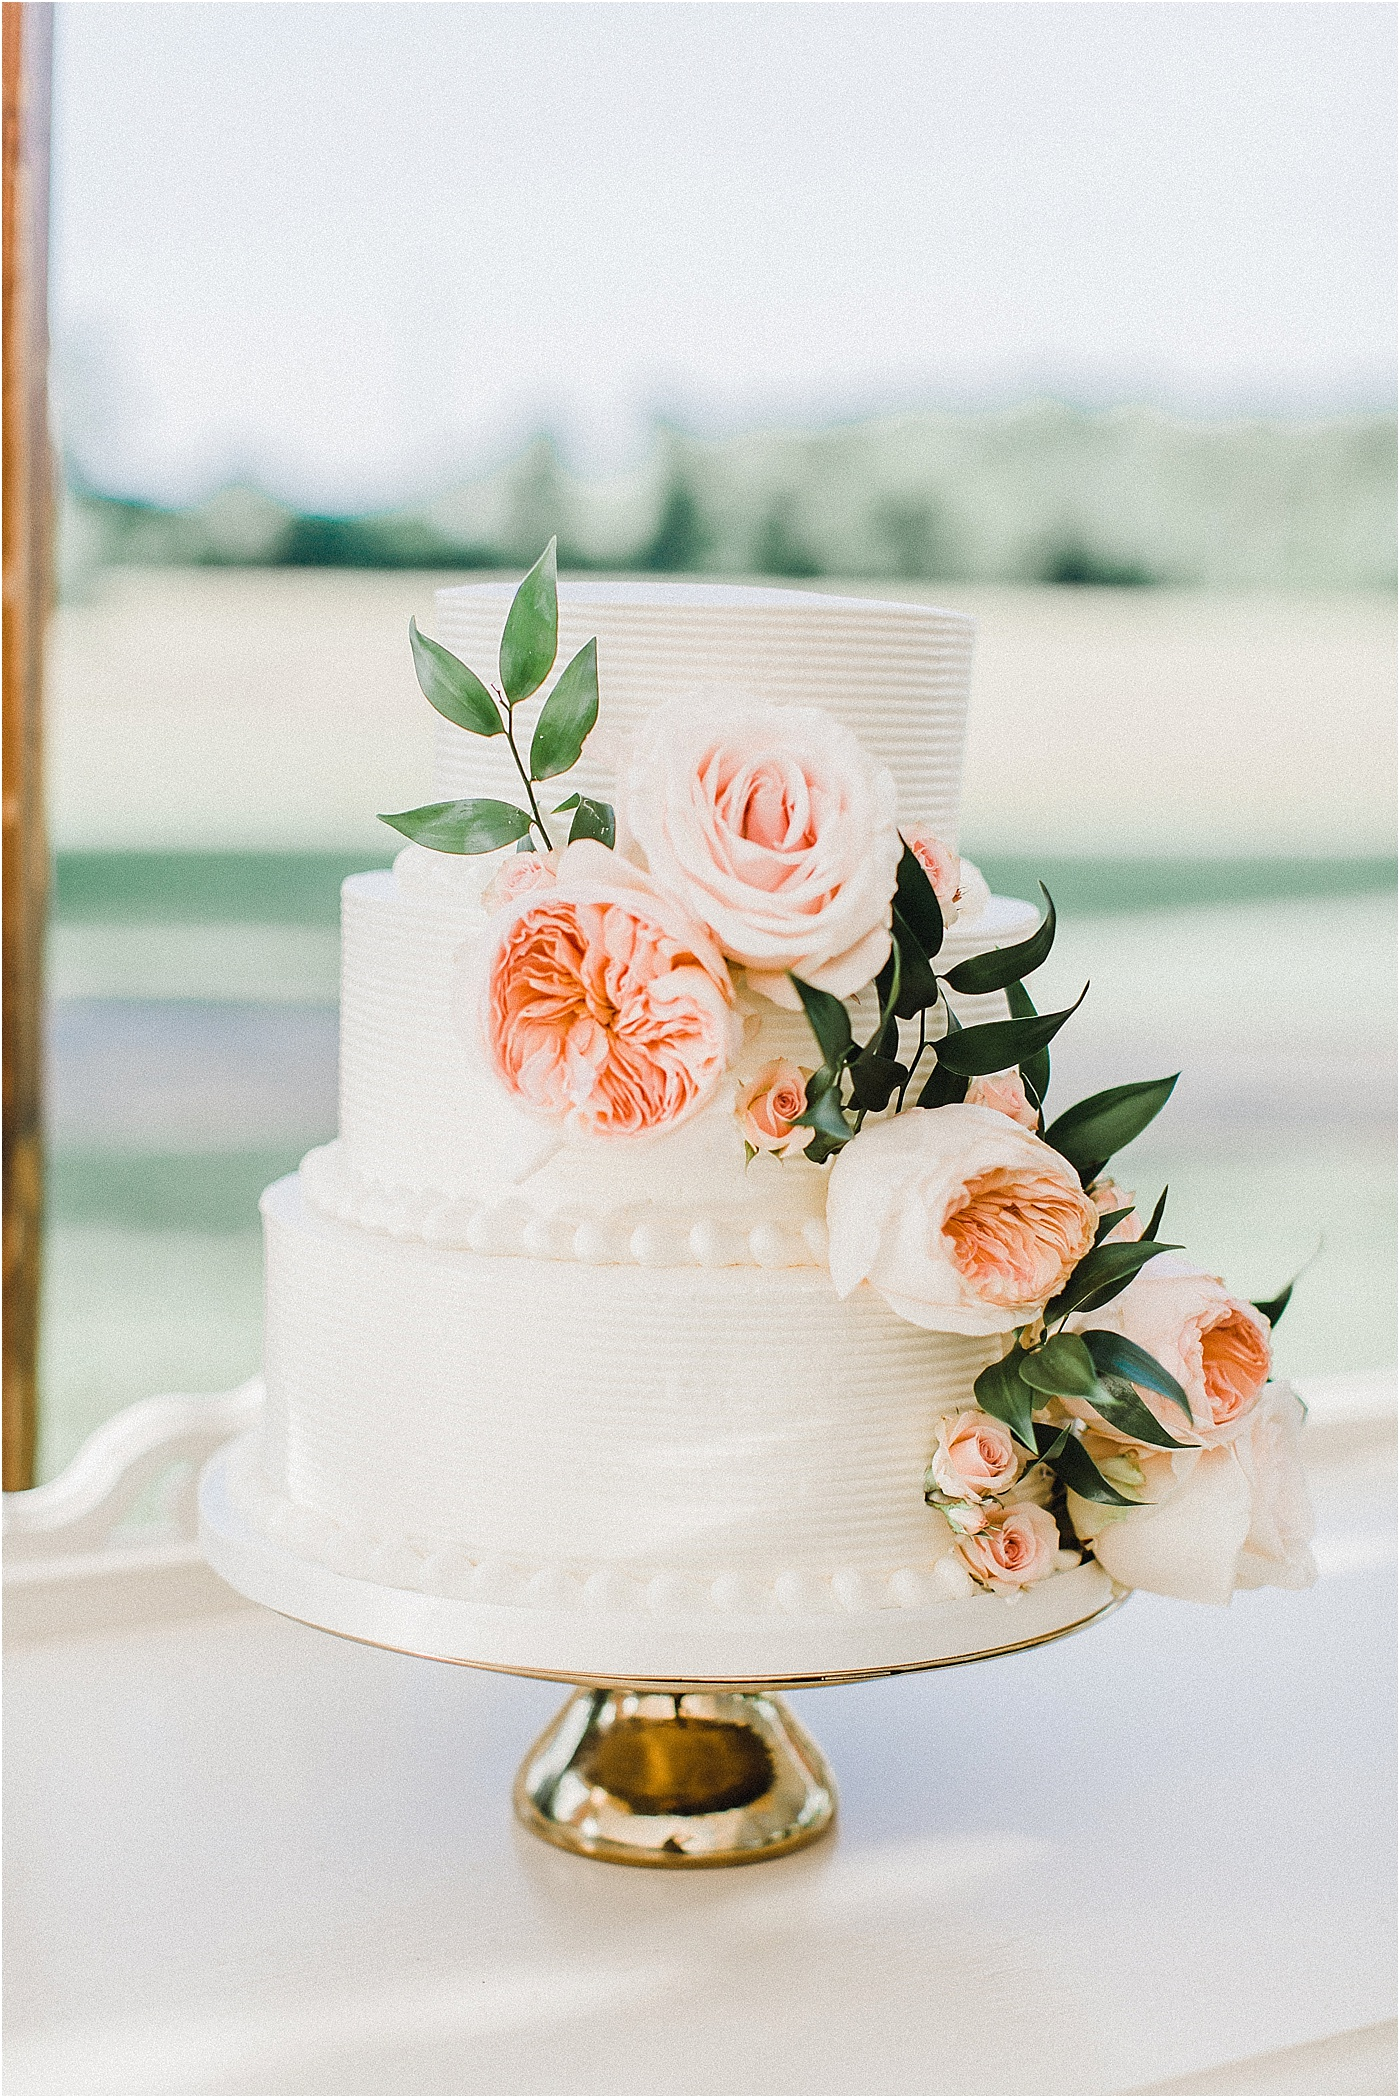 Wedding Cake with Garden Roses + Gold Cake Stand